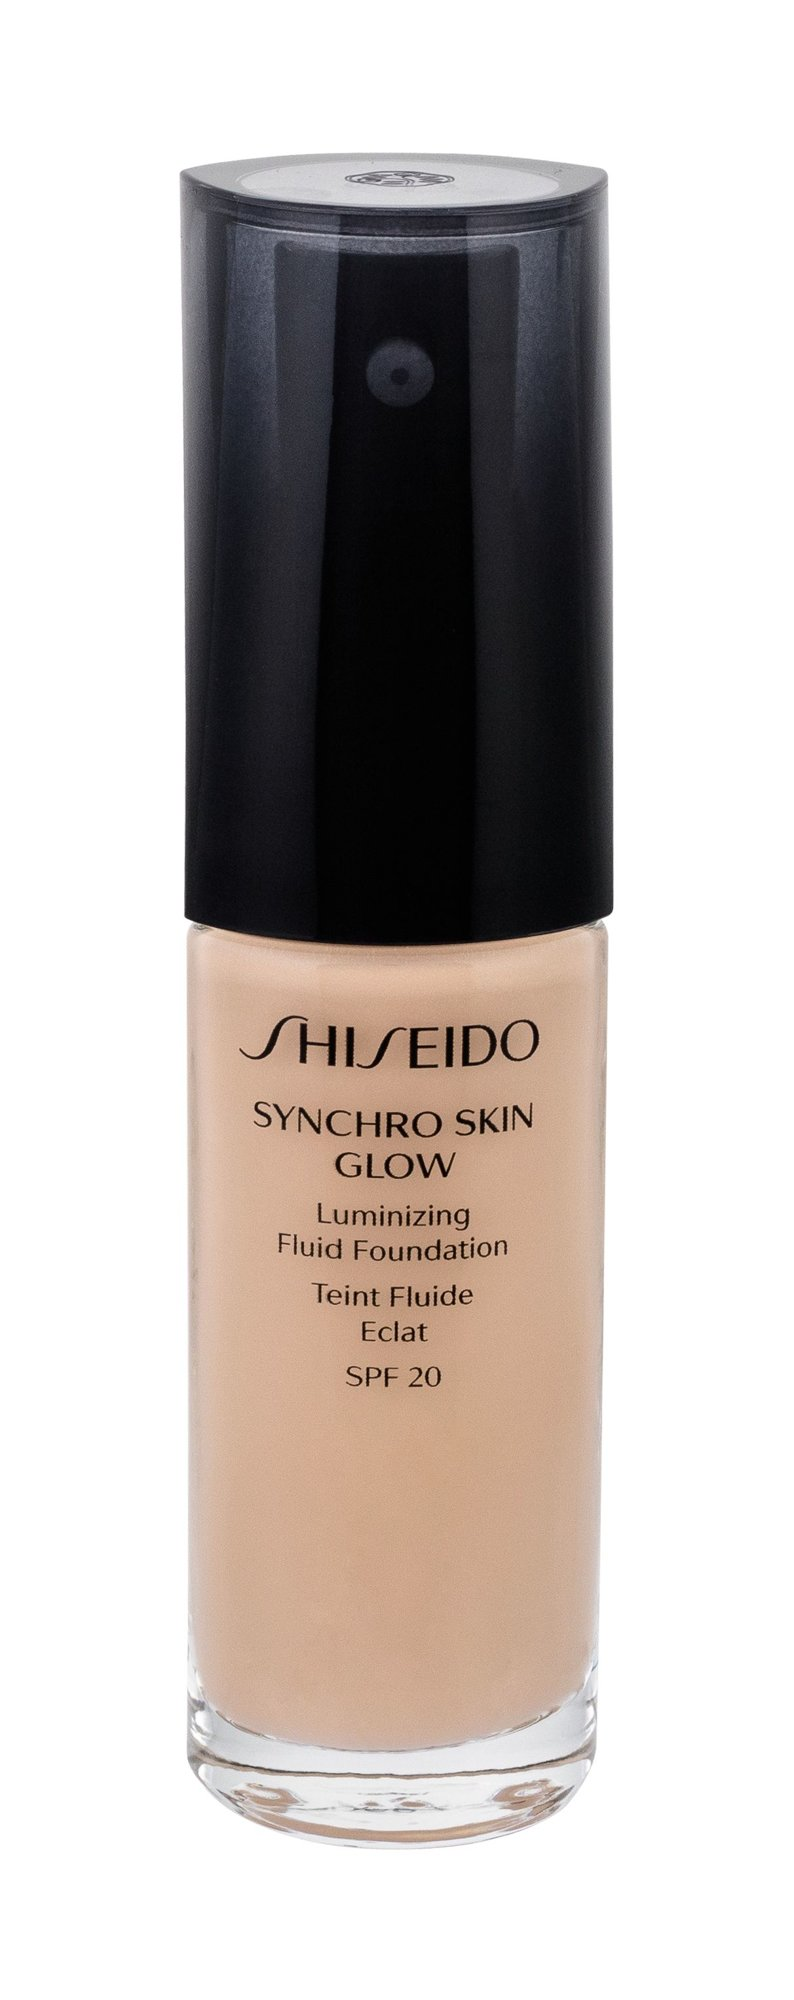 Shiseido Synchro Skin Glow Makeup 30ml Rose 2